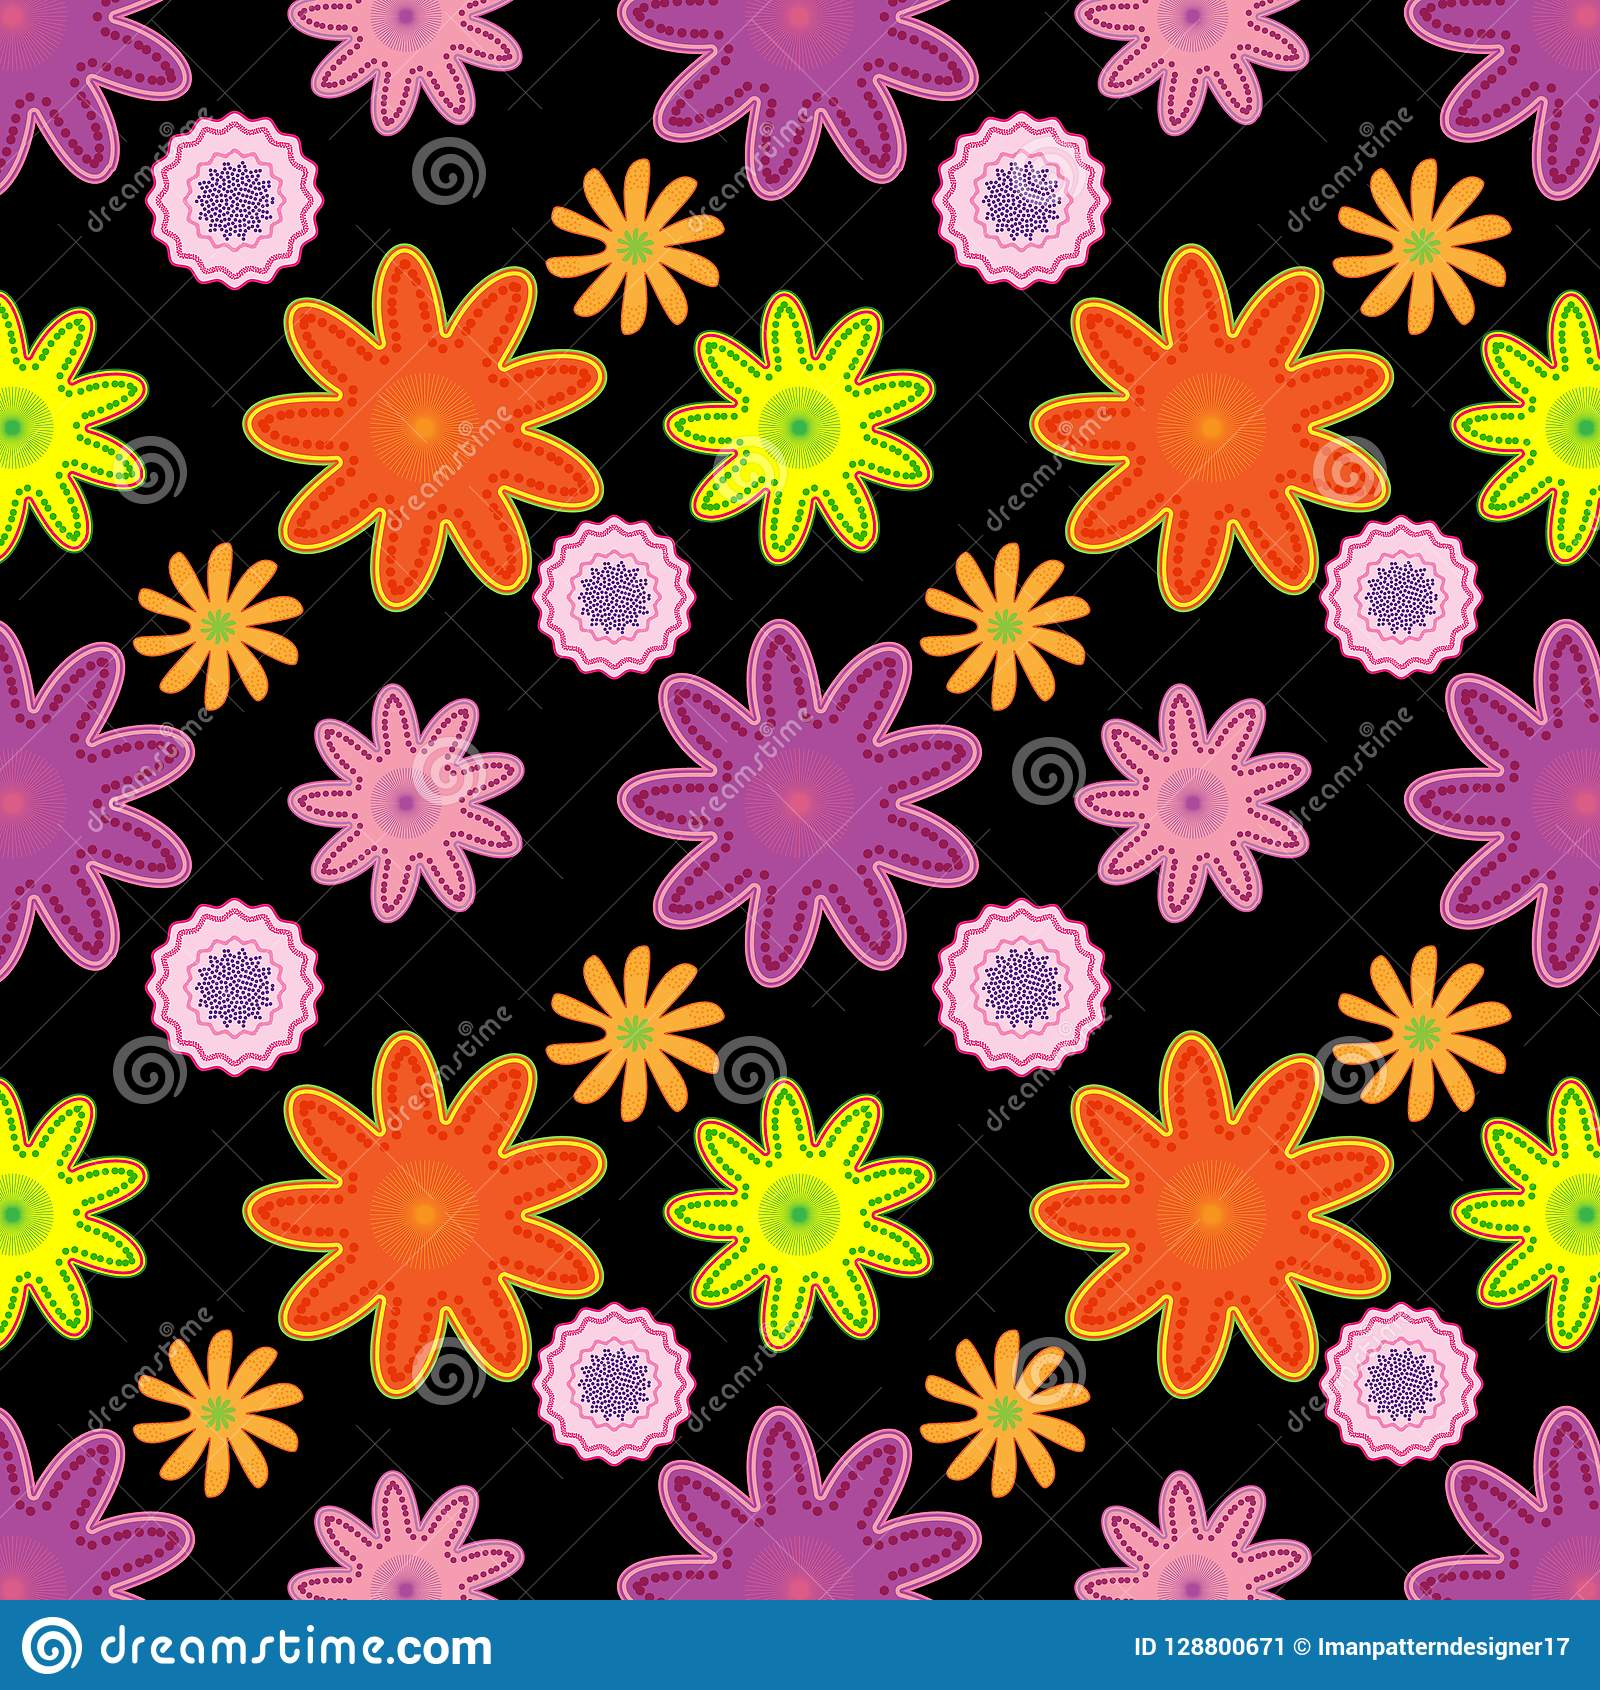 Bright Seamless Floral Pattern In Pink Orange And Purple Over Black Background